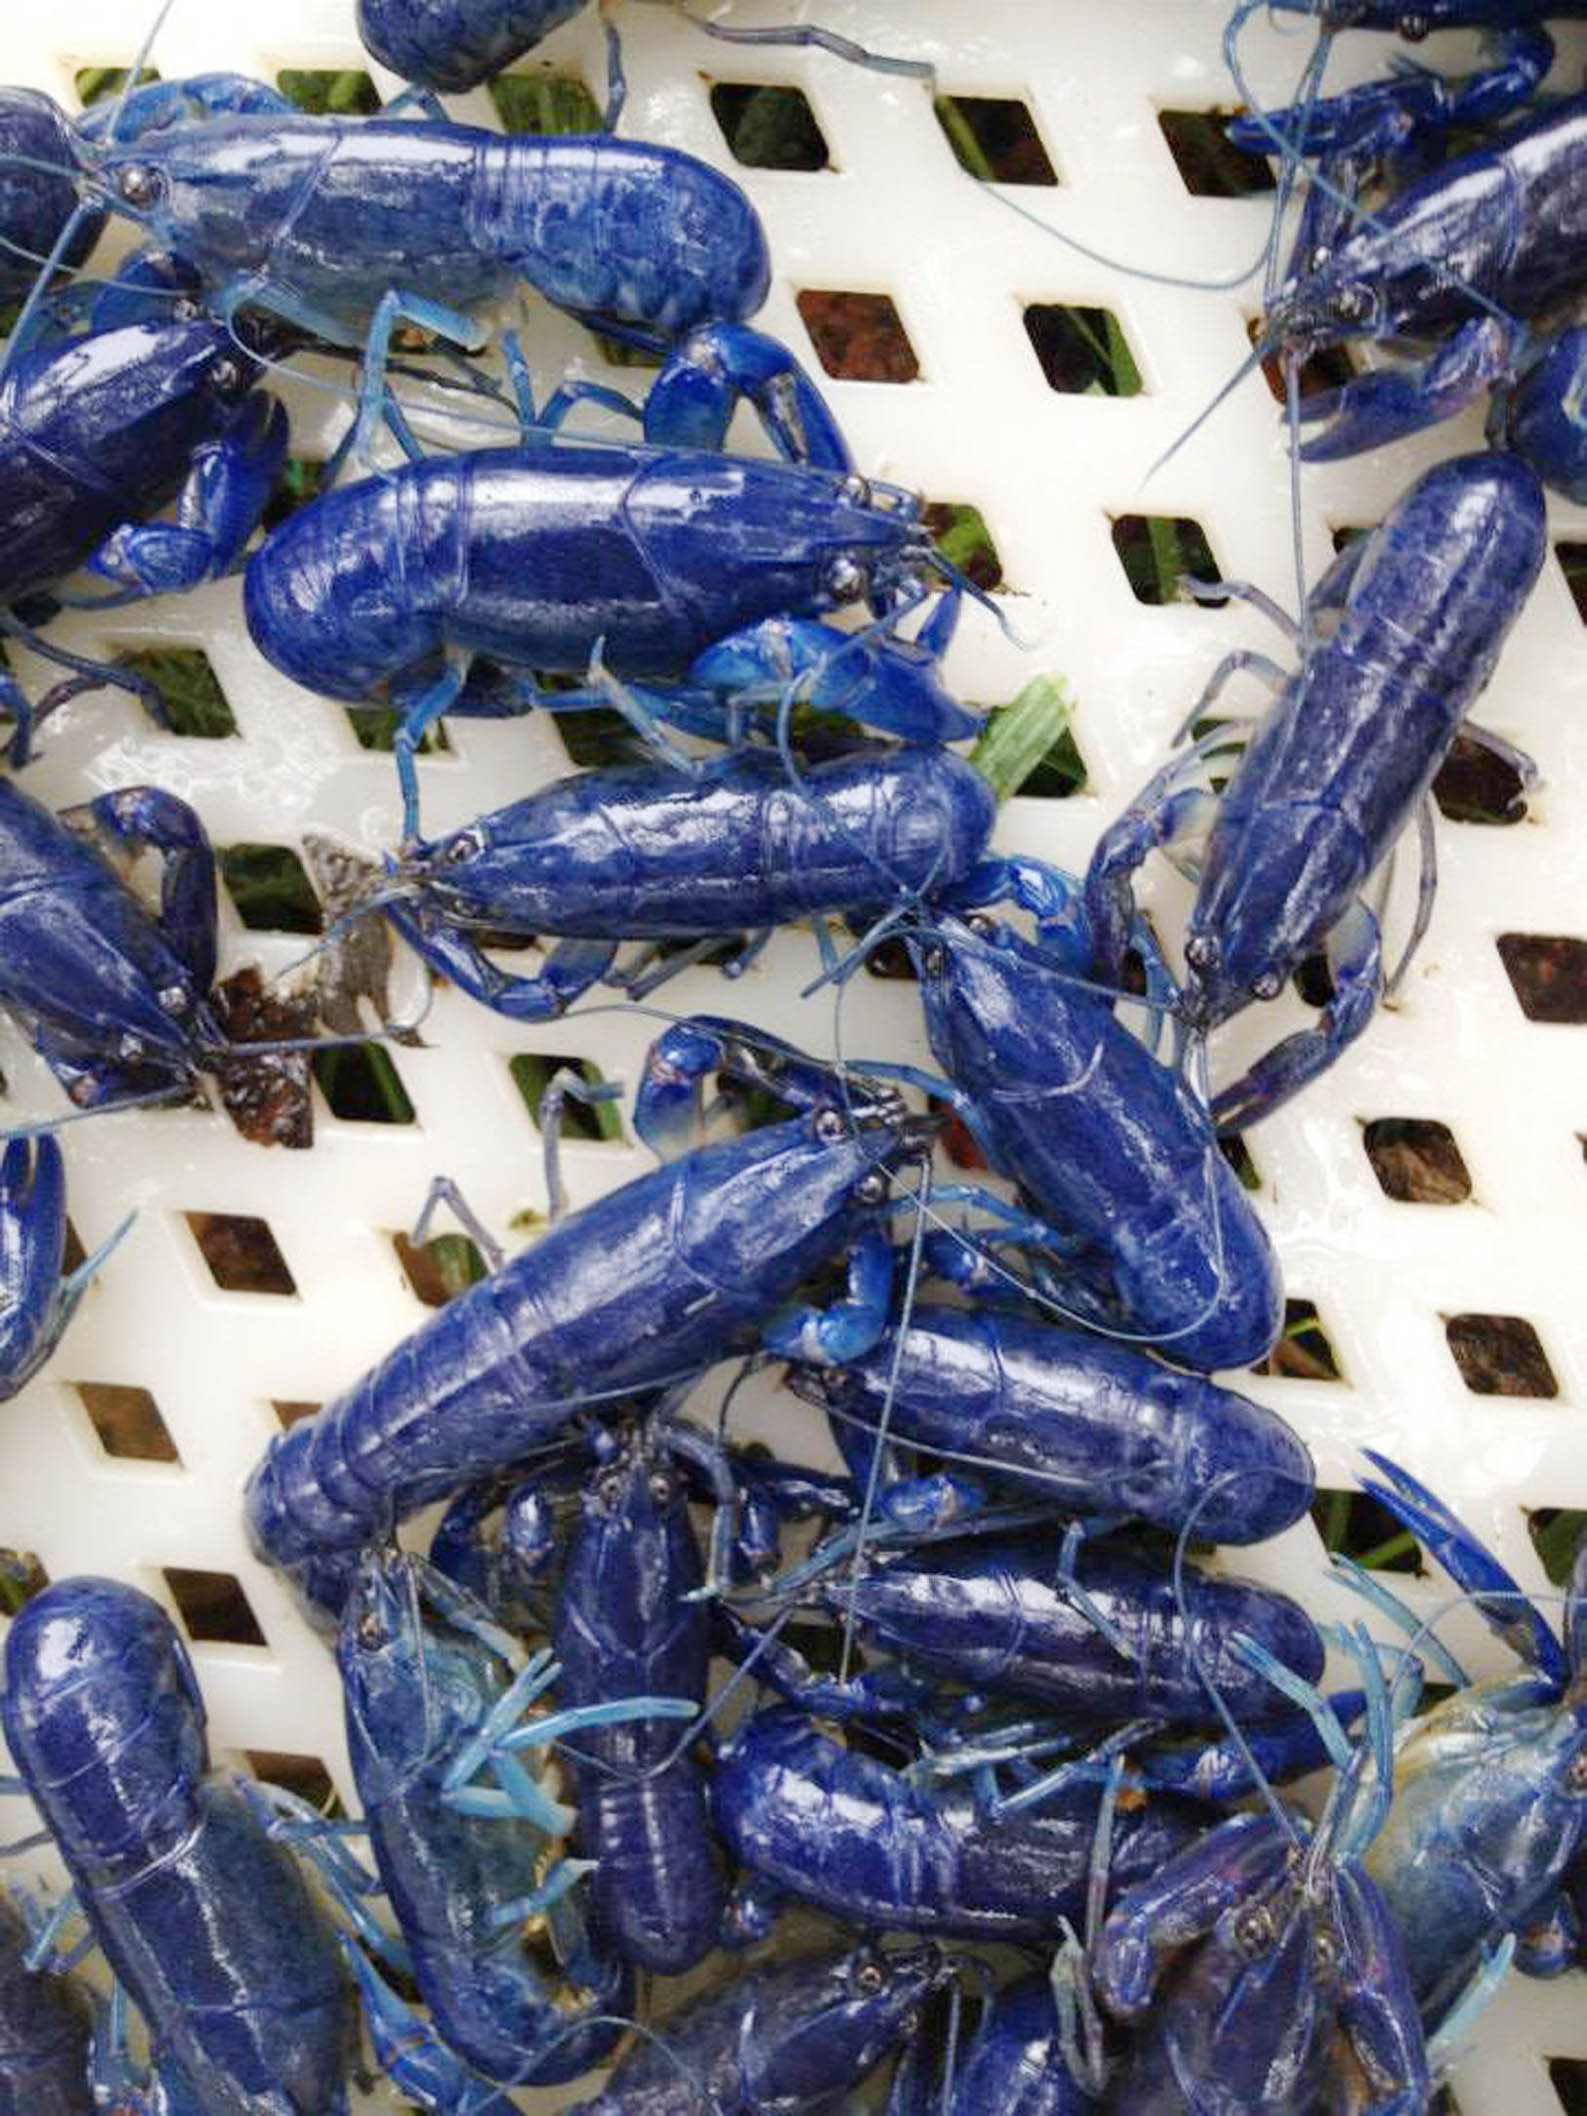 Blue Yabbies Crayfish